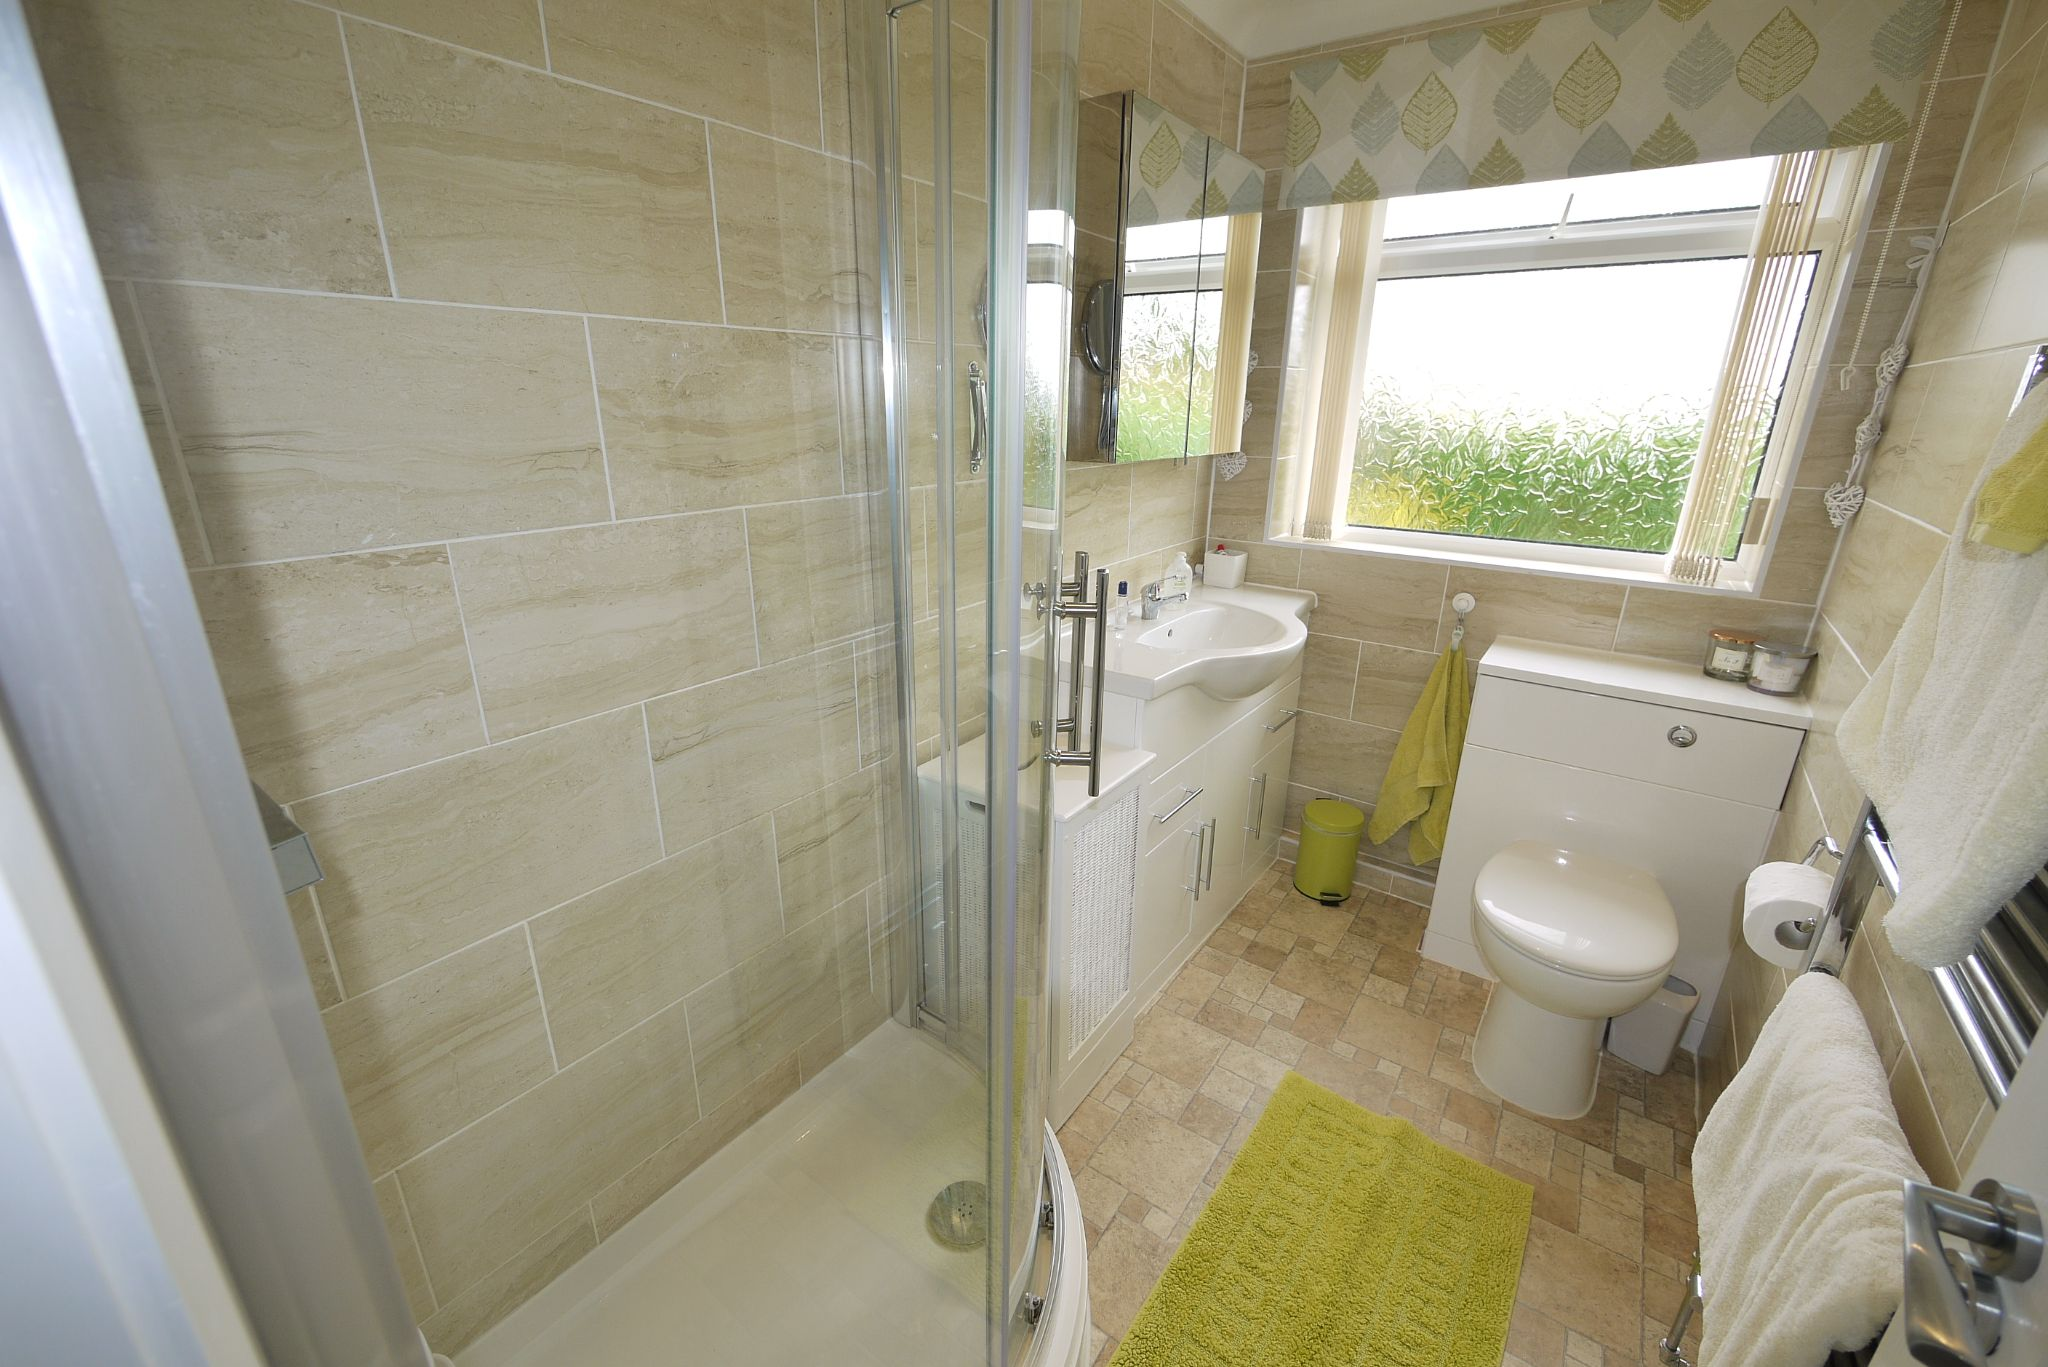 2 bedroom detached bungalow SSTC in Brighouse - Shower Room.